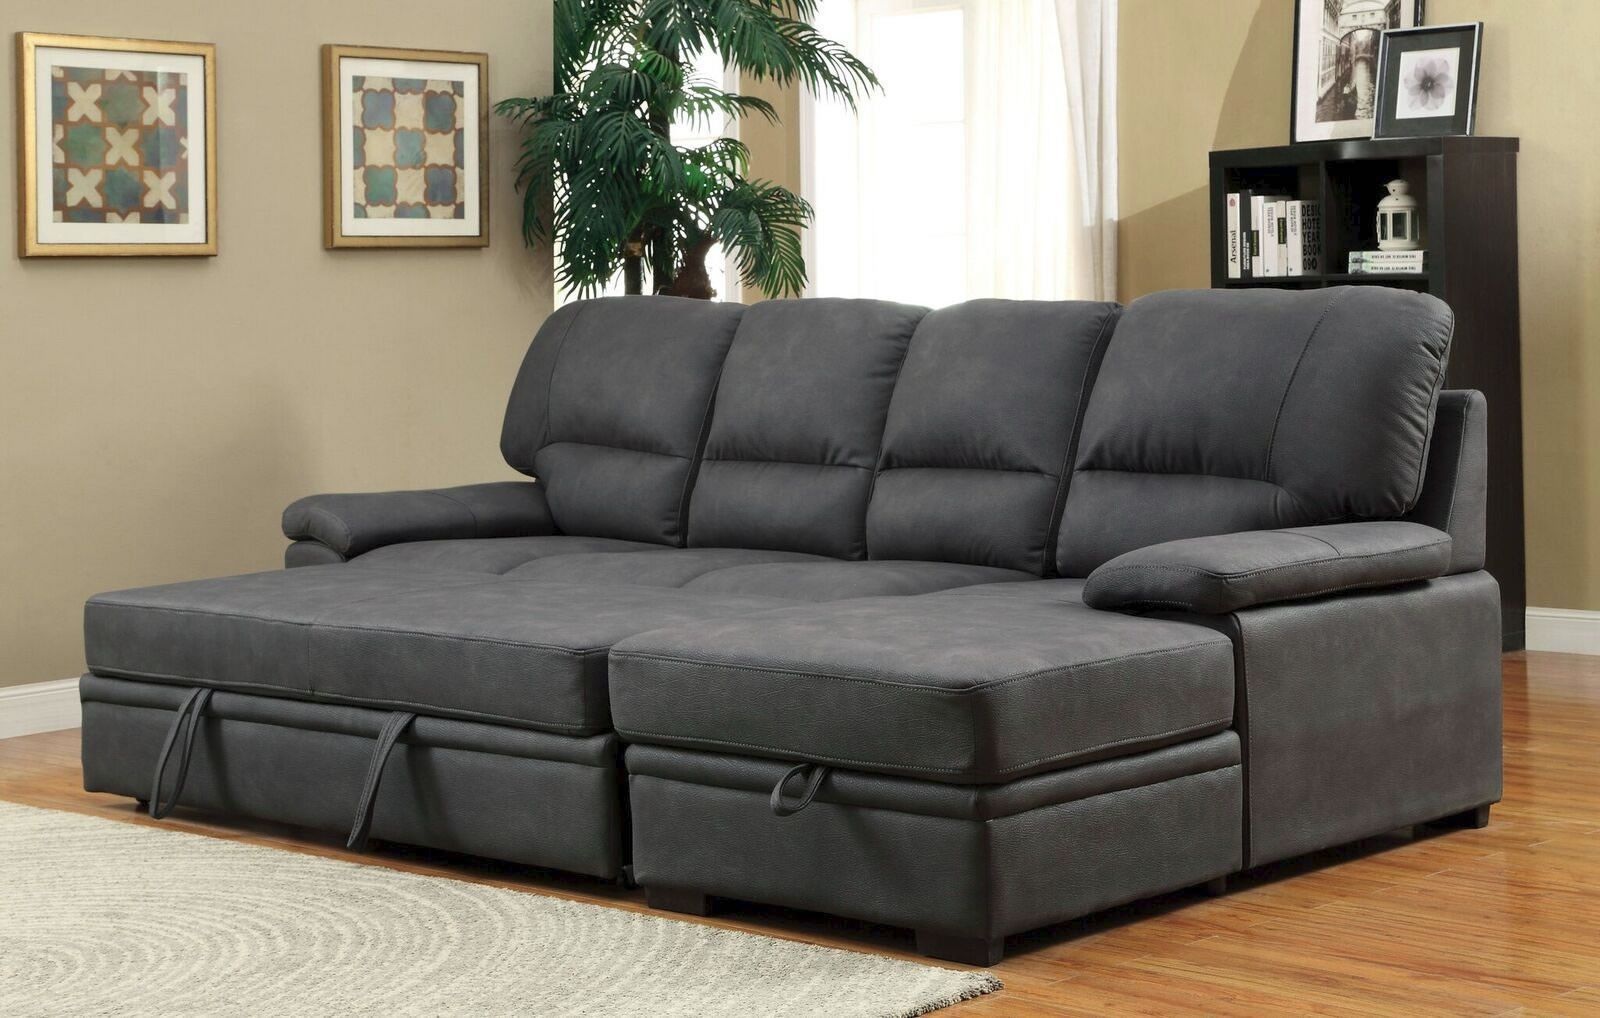 Minter Sofa Bed 89 Inches Pillow Top Arms Futon Sofa Futon Sets